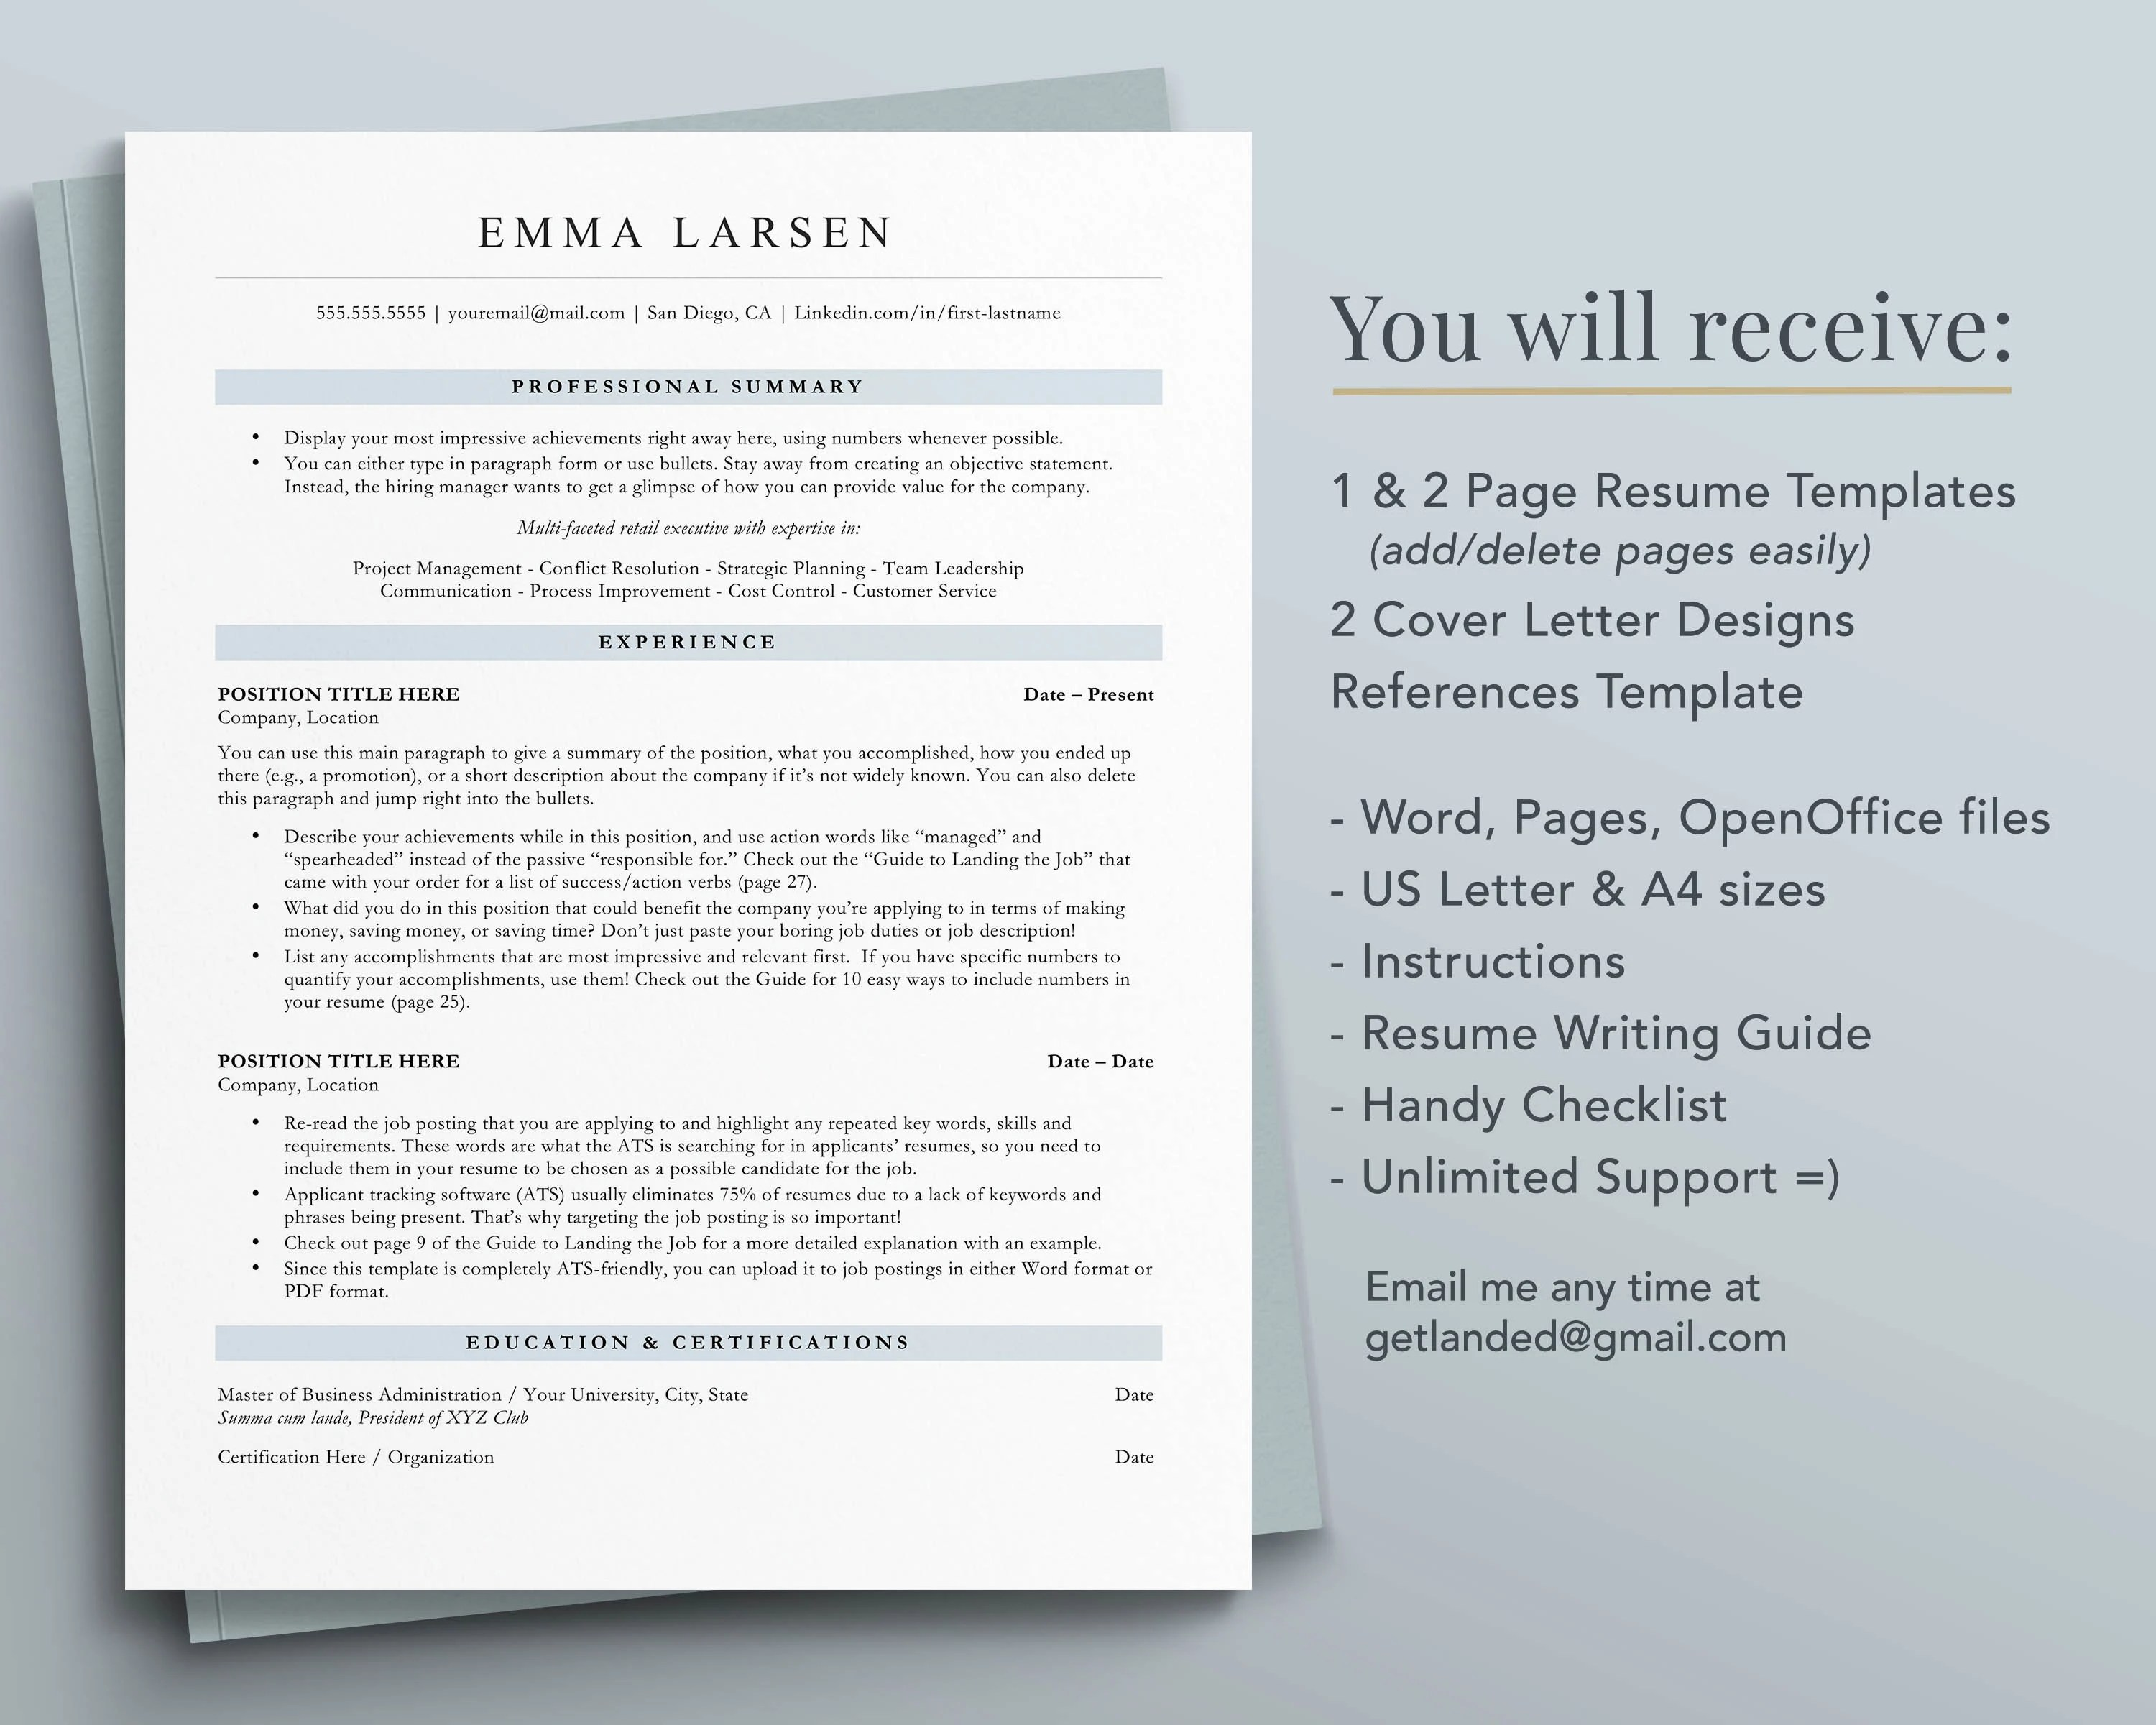 Microsoft word resume templates 2019 you ve just gotten the call for your dream job and the recruiter is asking for your resume as soon as possible the only problem is that you don t have a resume ready to send them that s no 19 google docs resume templates. Design Templates Resume Templates Google Docs Resume Template Executive Resume Template Ats Friendly Resume Template For Word Ats Compatible Resume Instant Download Pages